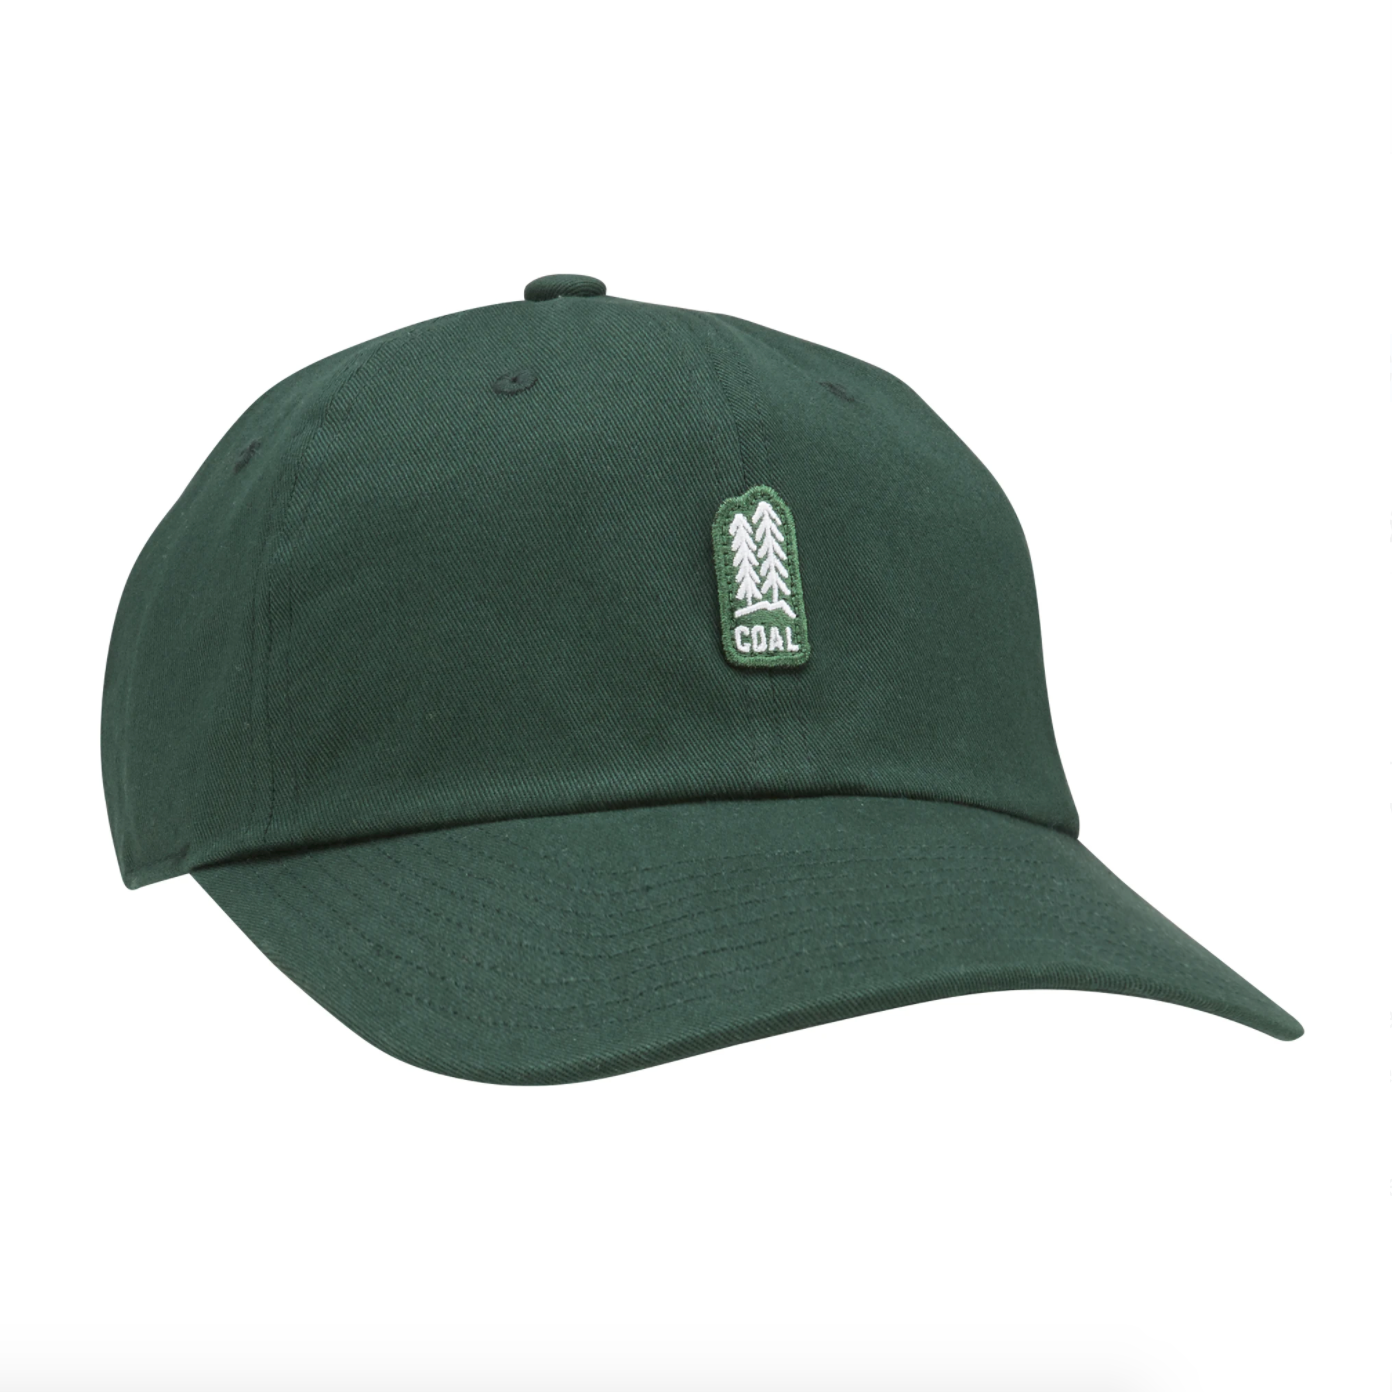 The Junior Unstructured Cotton Camping Cap